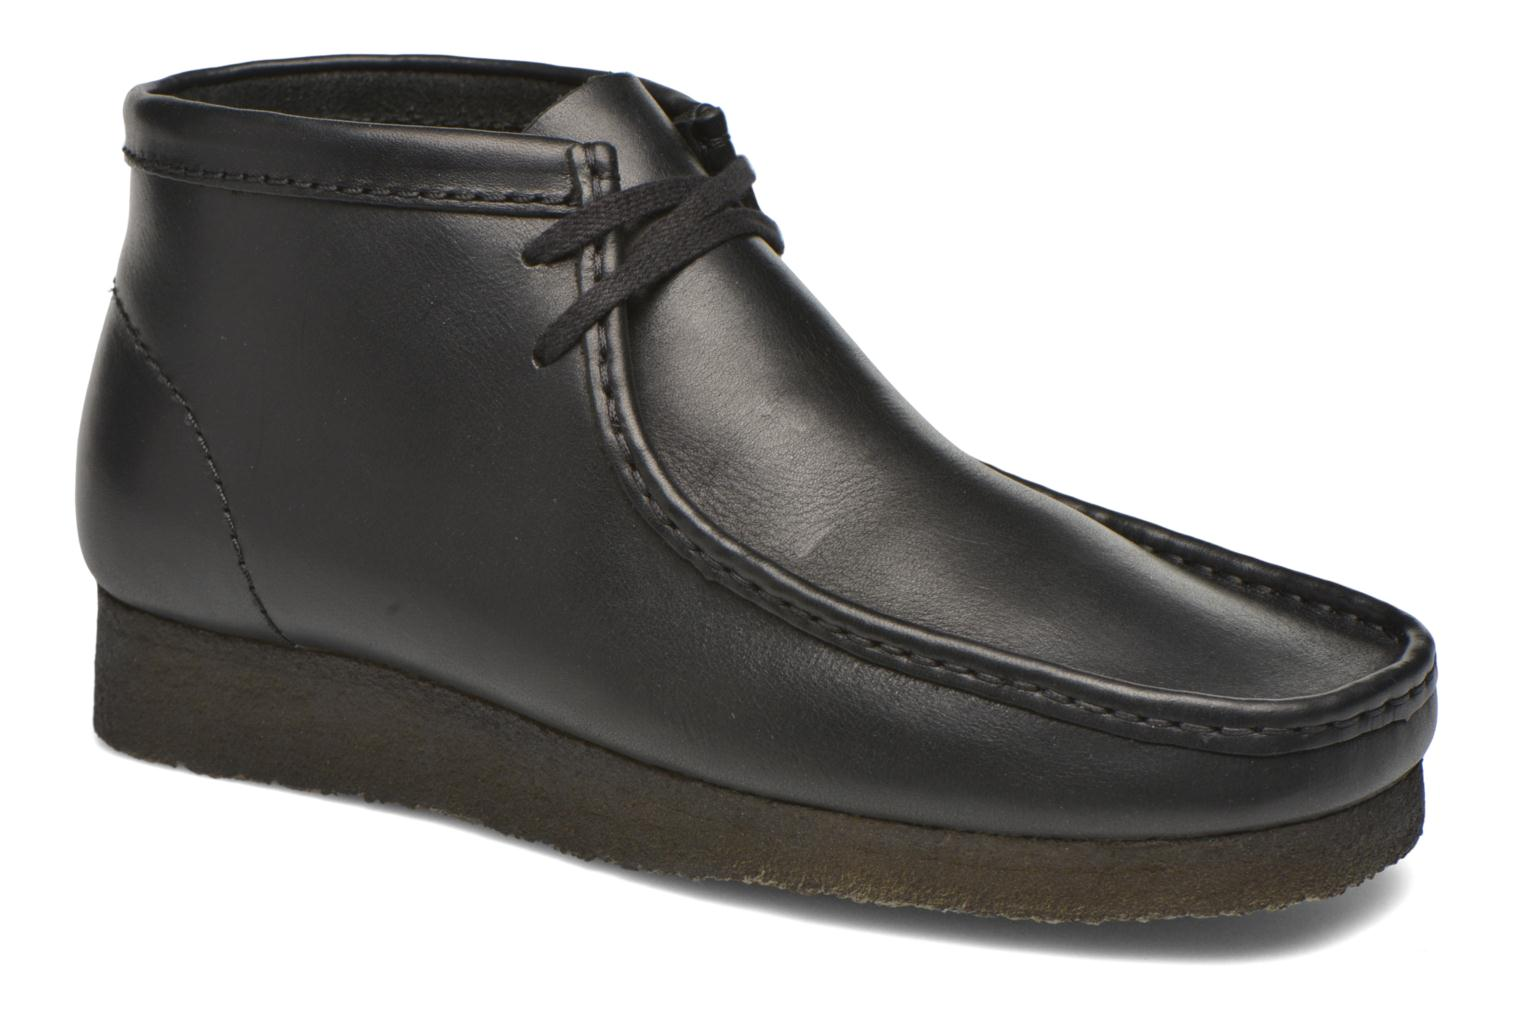 Wallabee Boot M by Clarks Originals